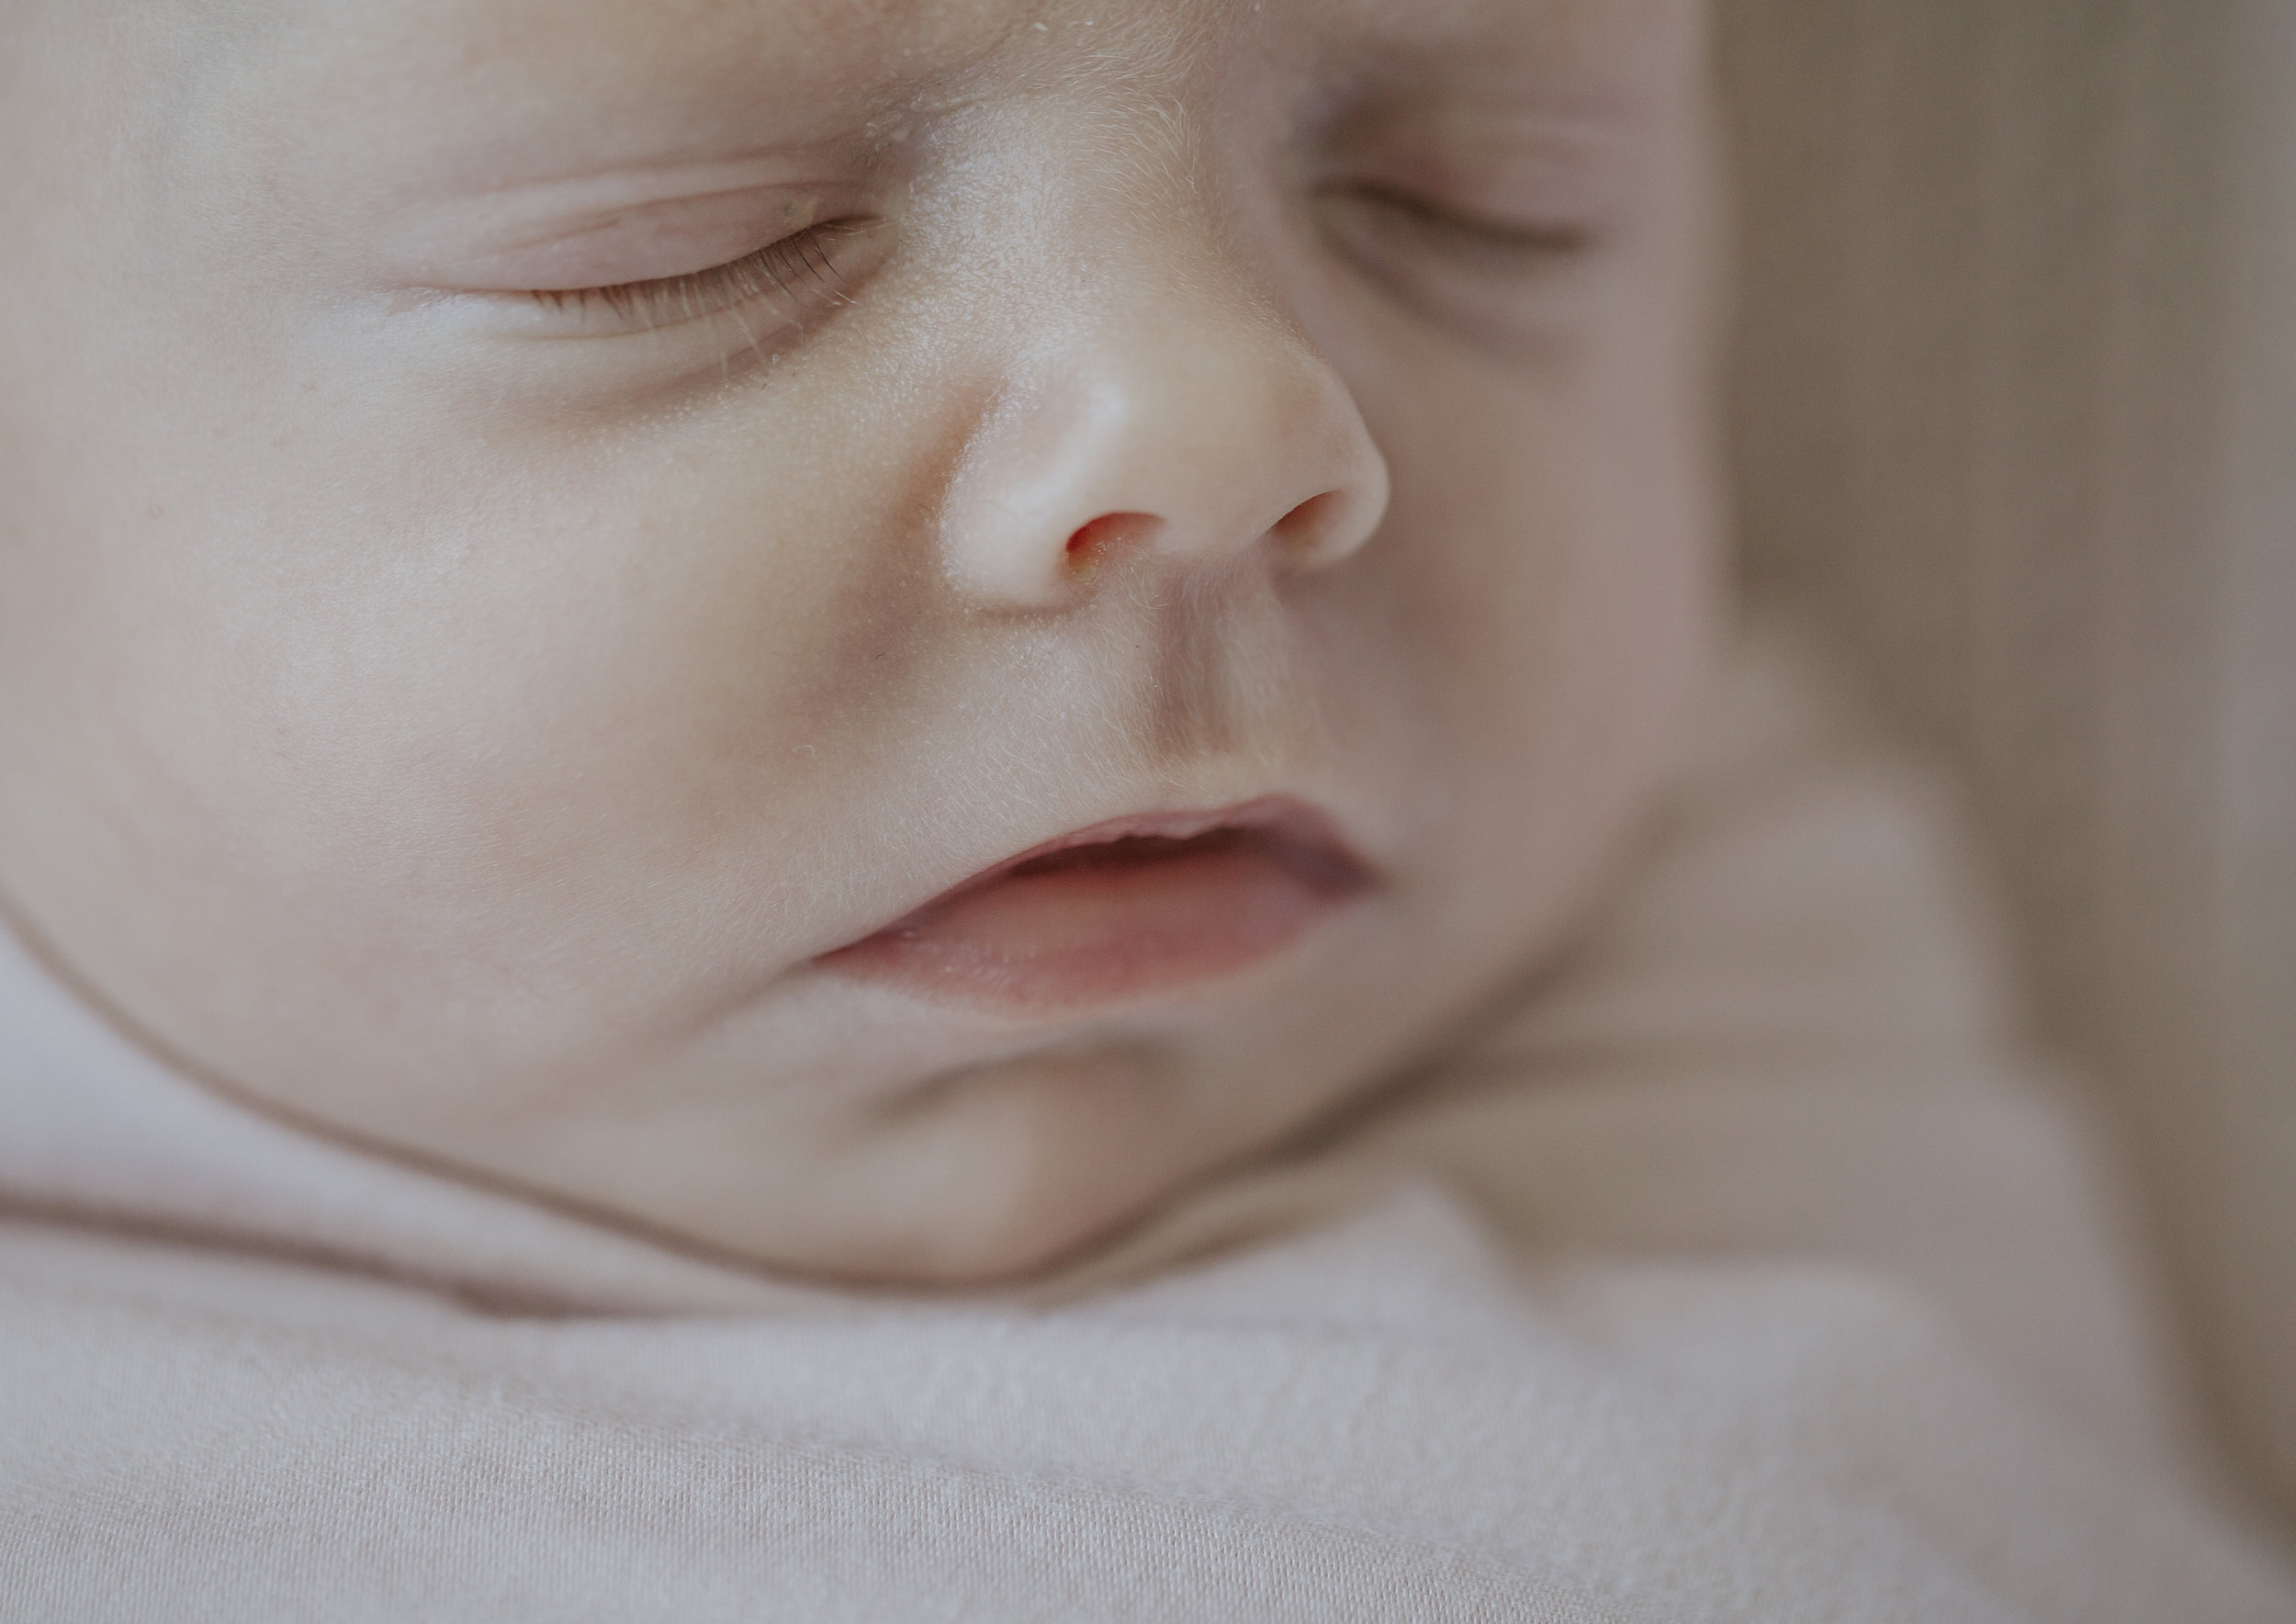 Close up photo of newborn baby's facial features